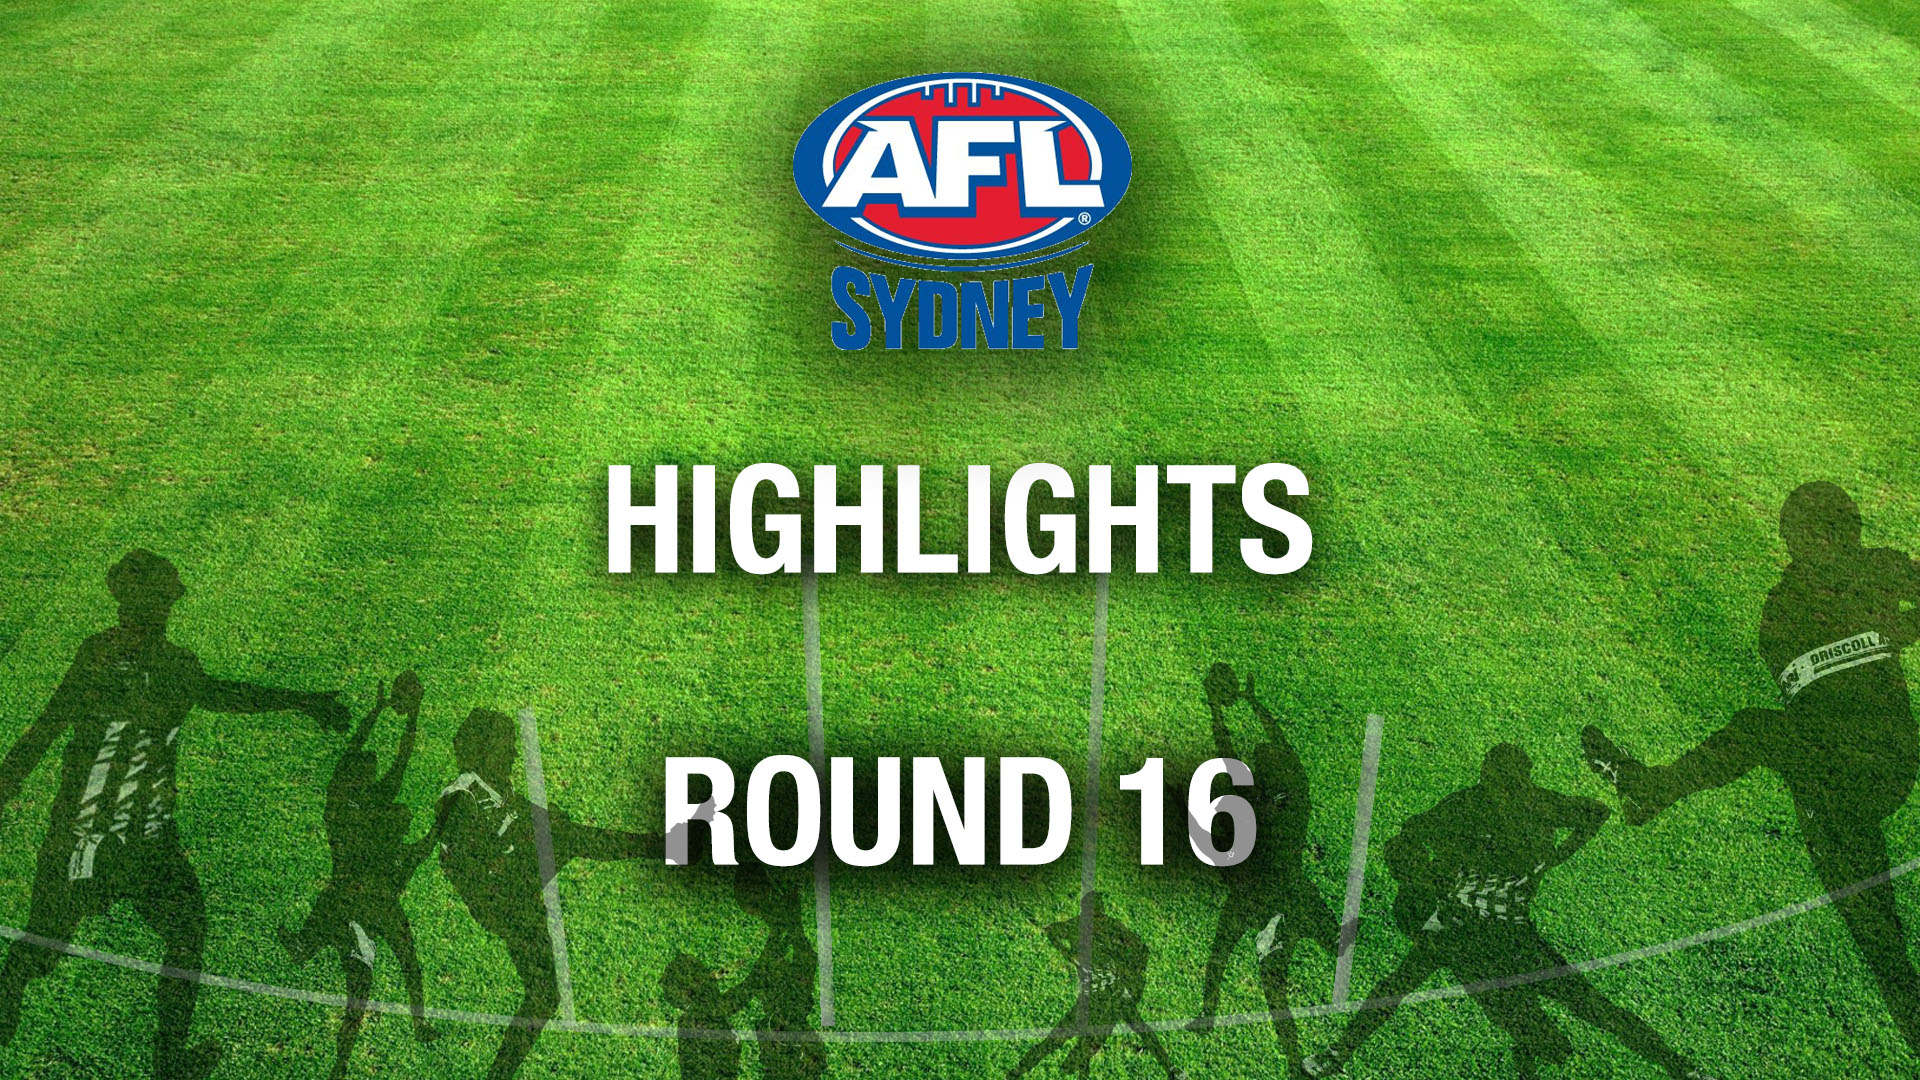 AFL SYDNEY 2018 RD16 HIGHLIGHTS